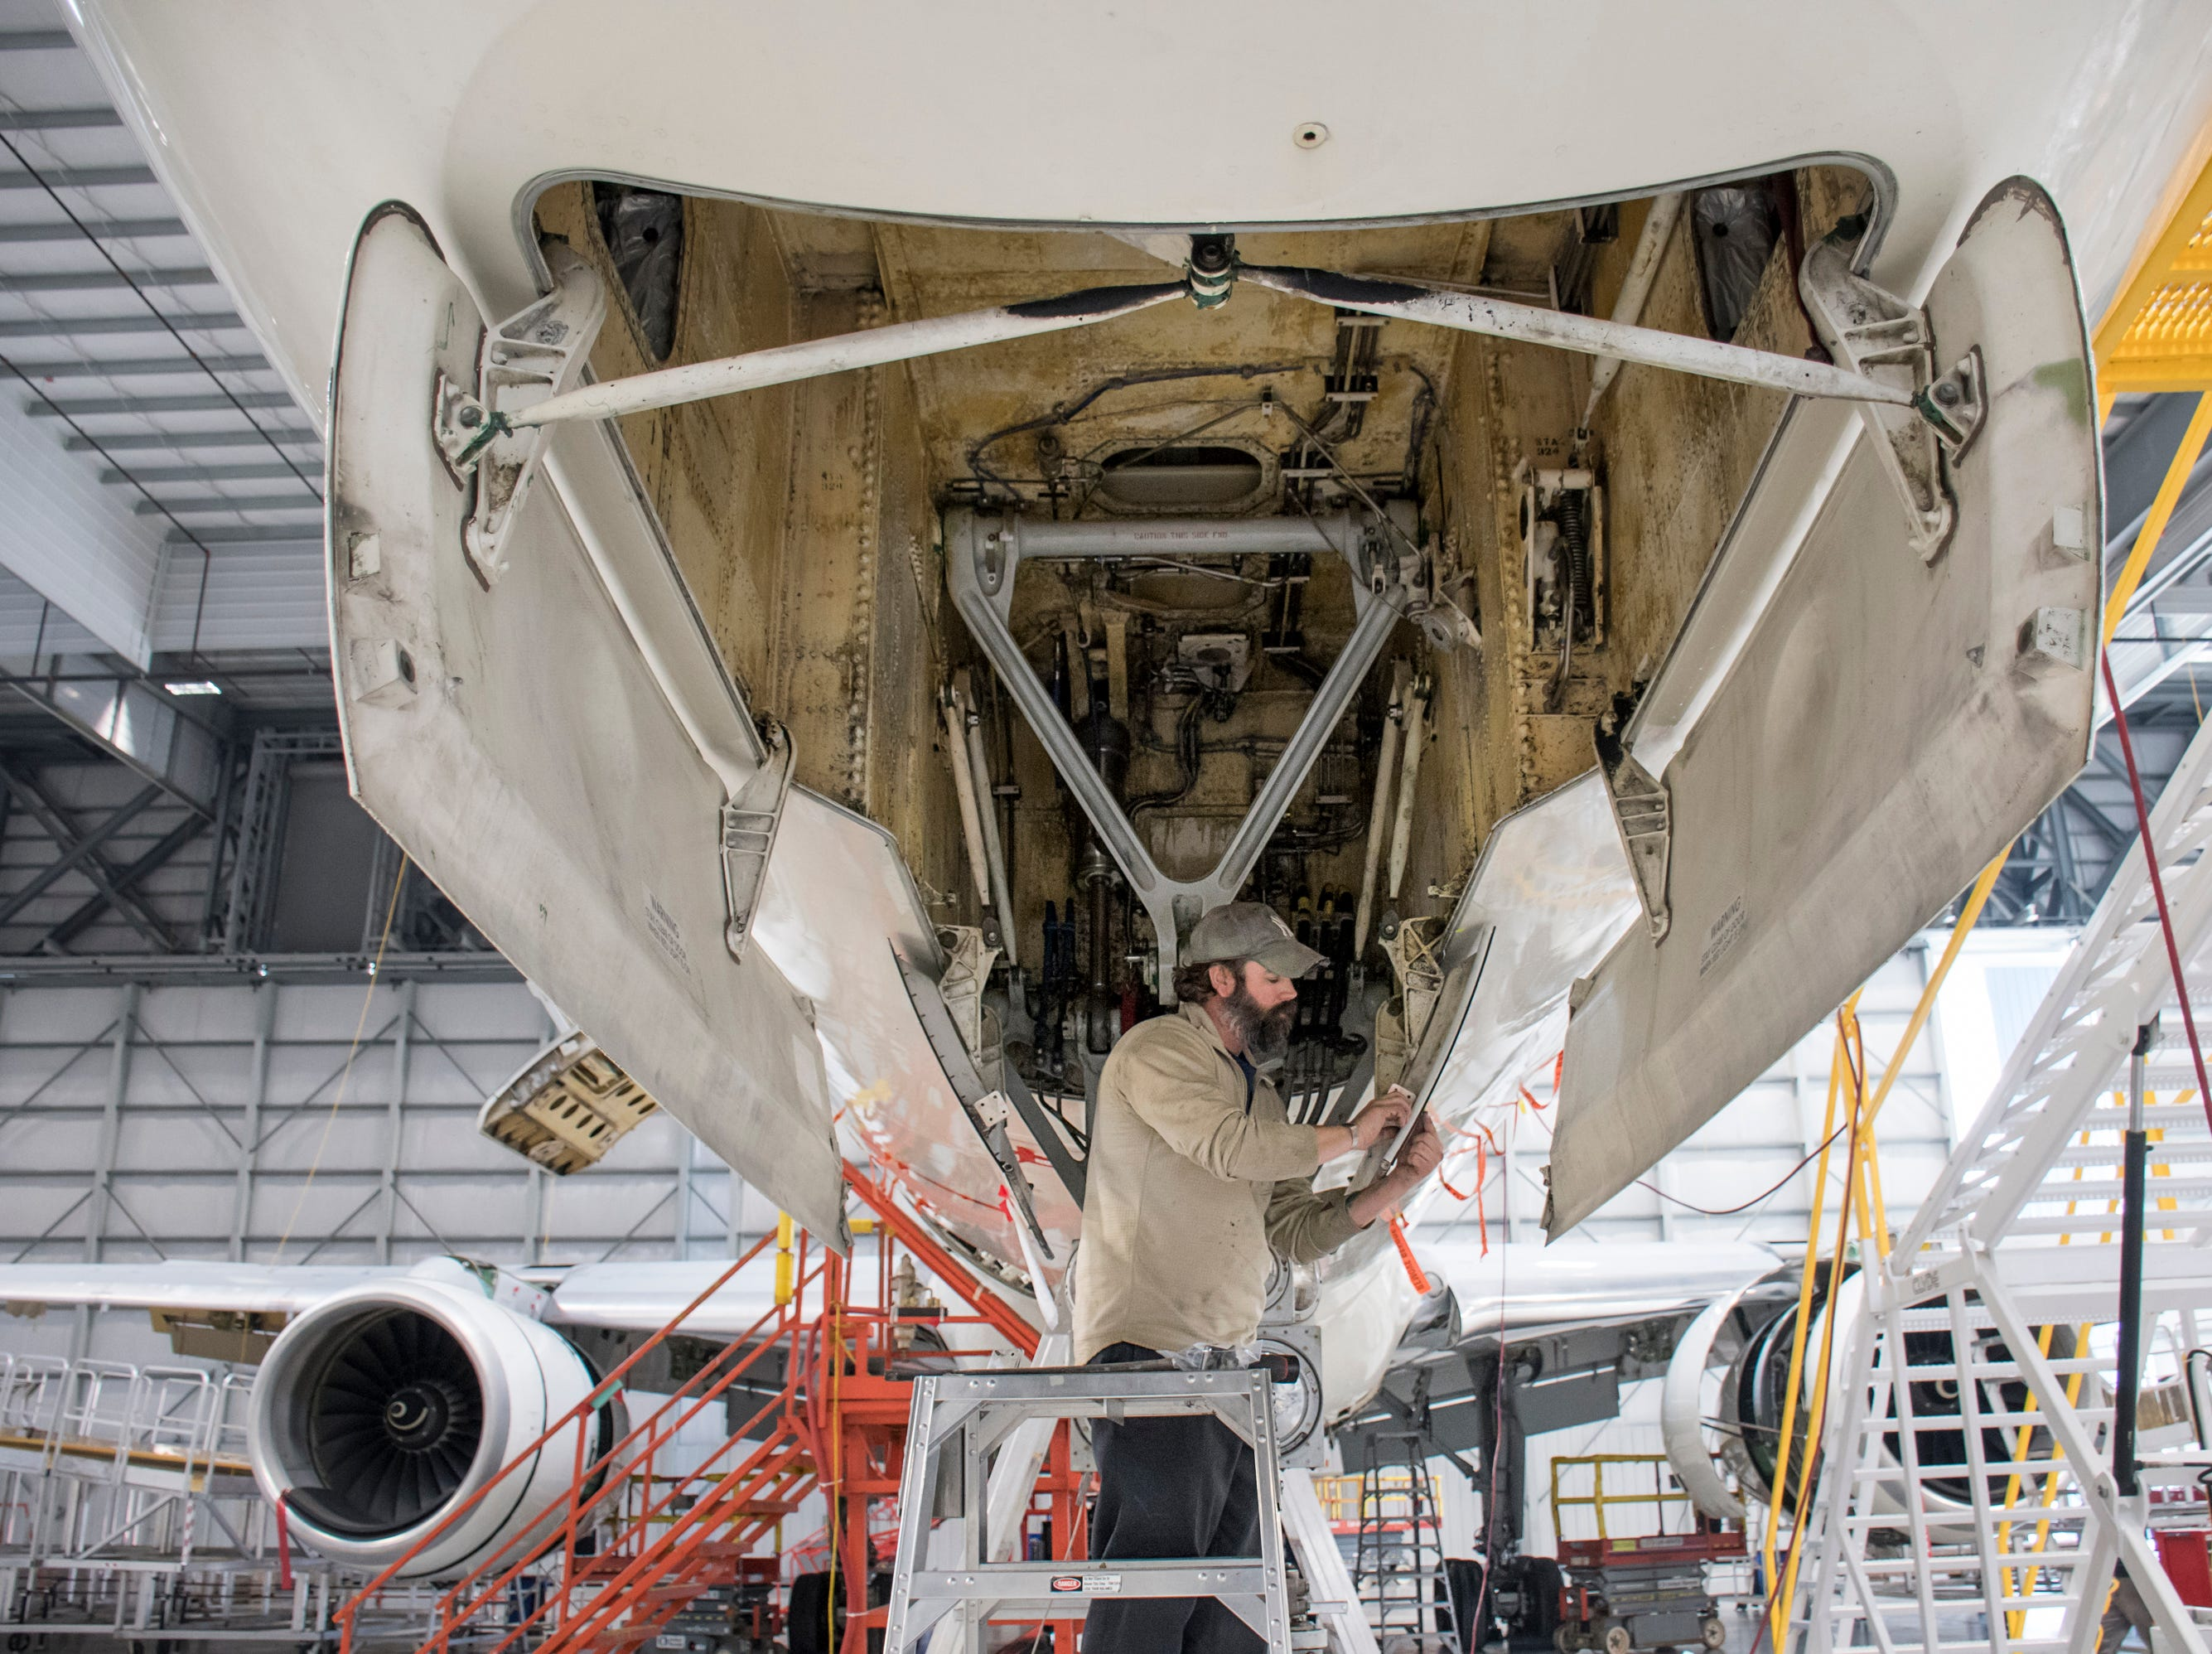 Mechanic Damion Vaughn works on an airplane at ST Engineering at the Pensacola International Airport in Pensacola on Friday, February 8, 2019.